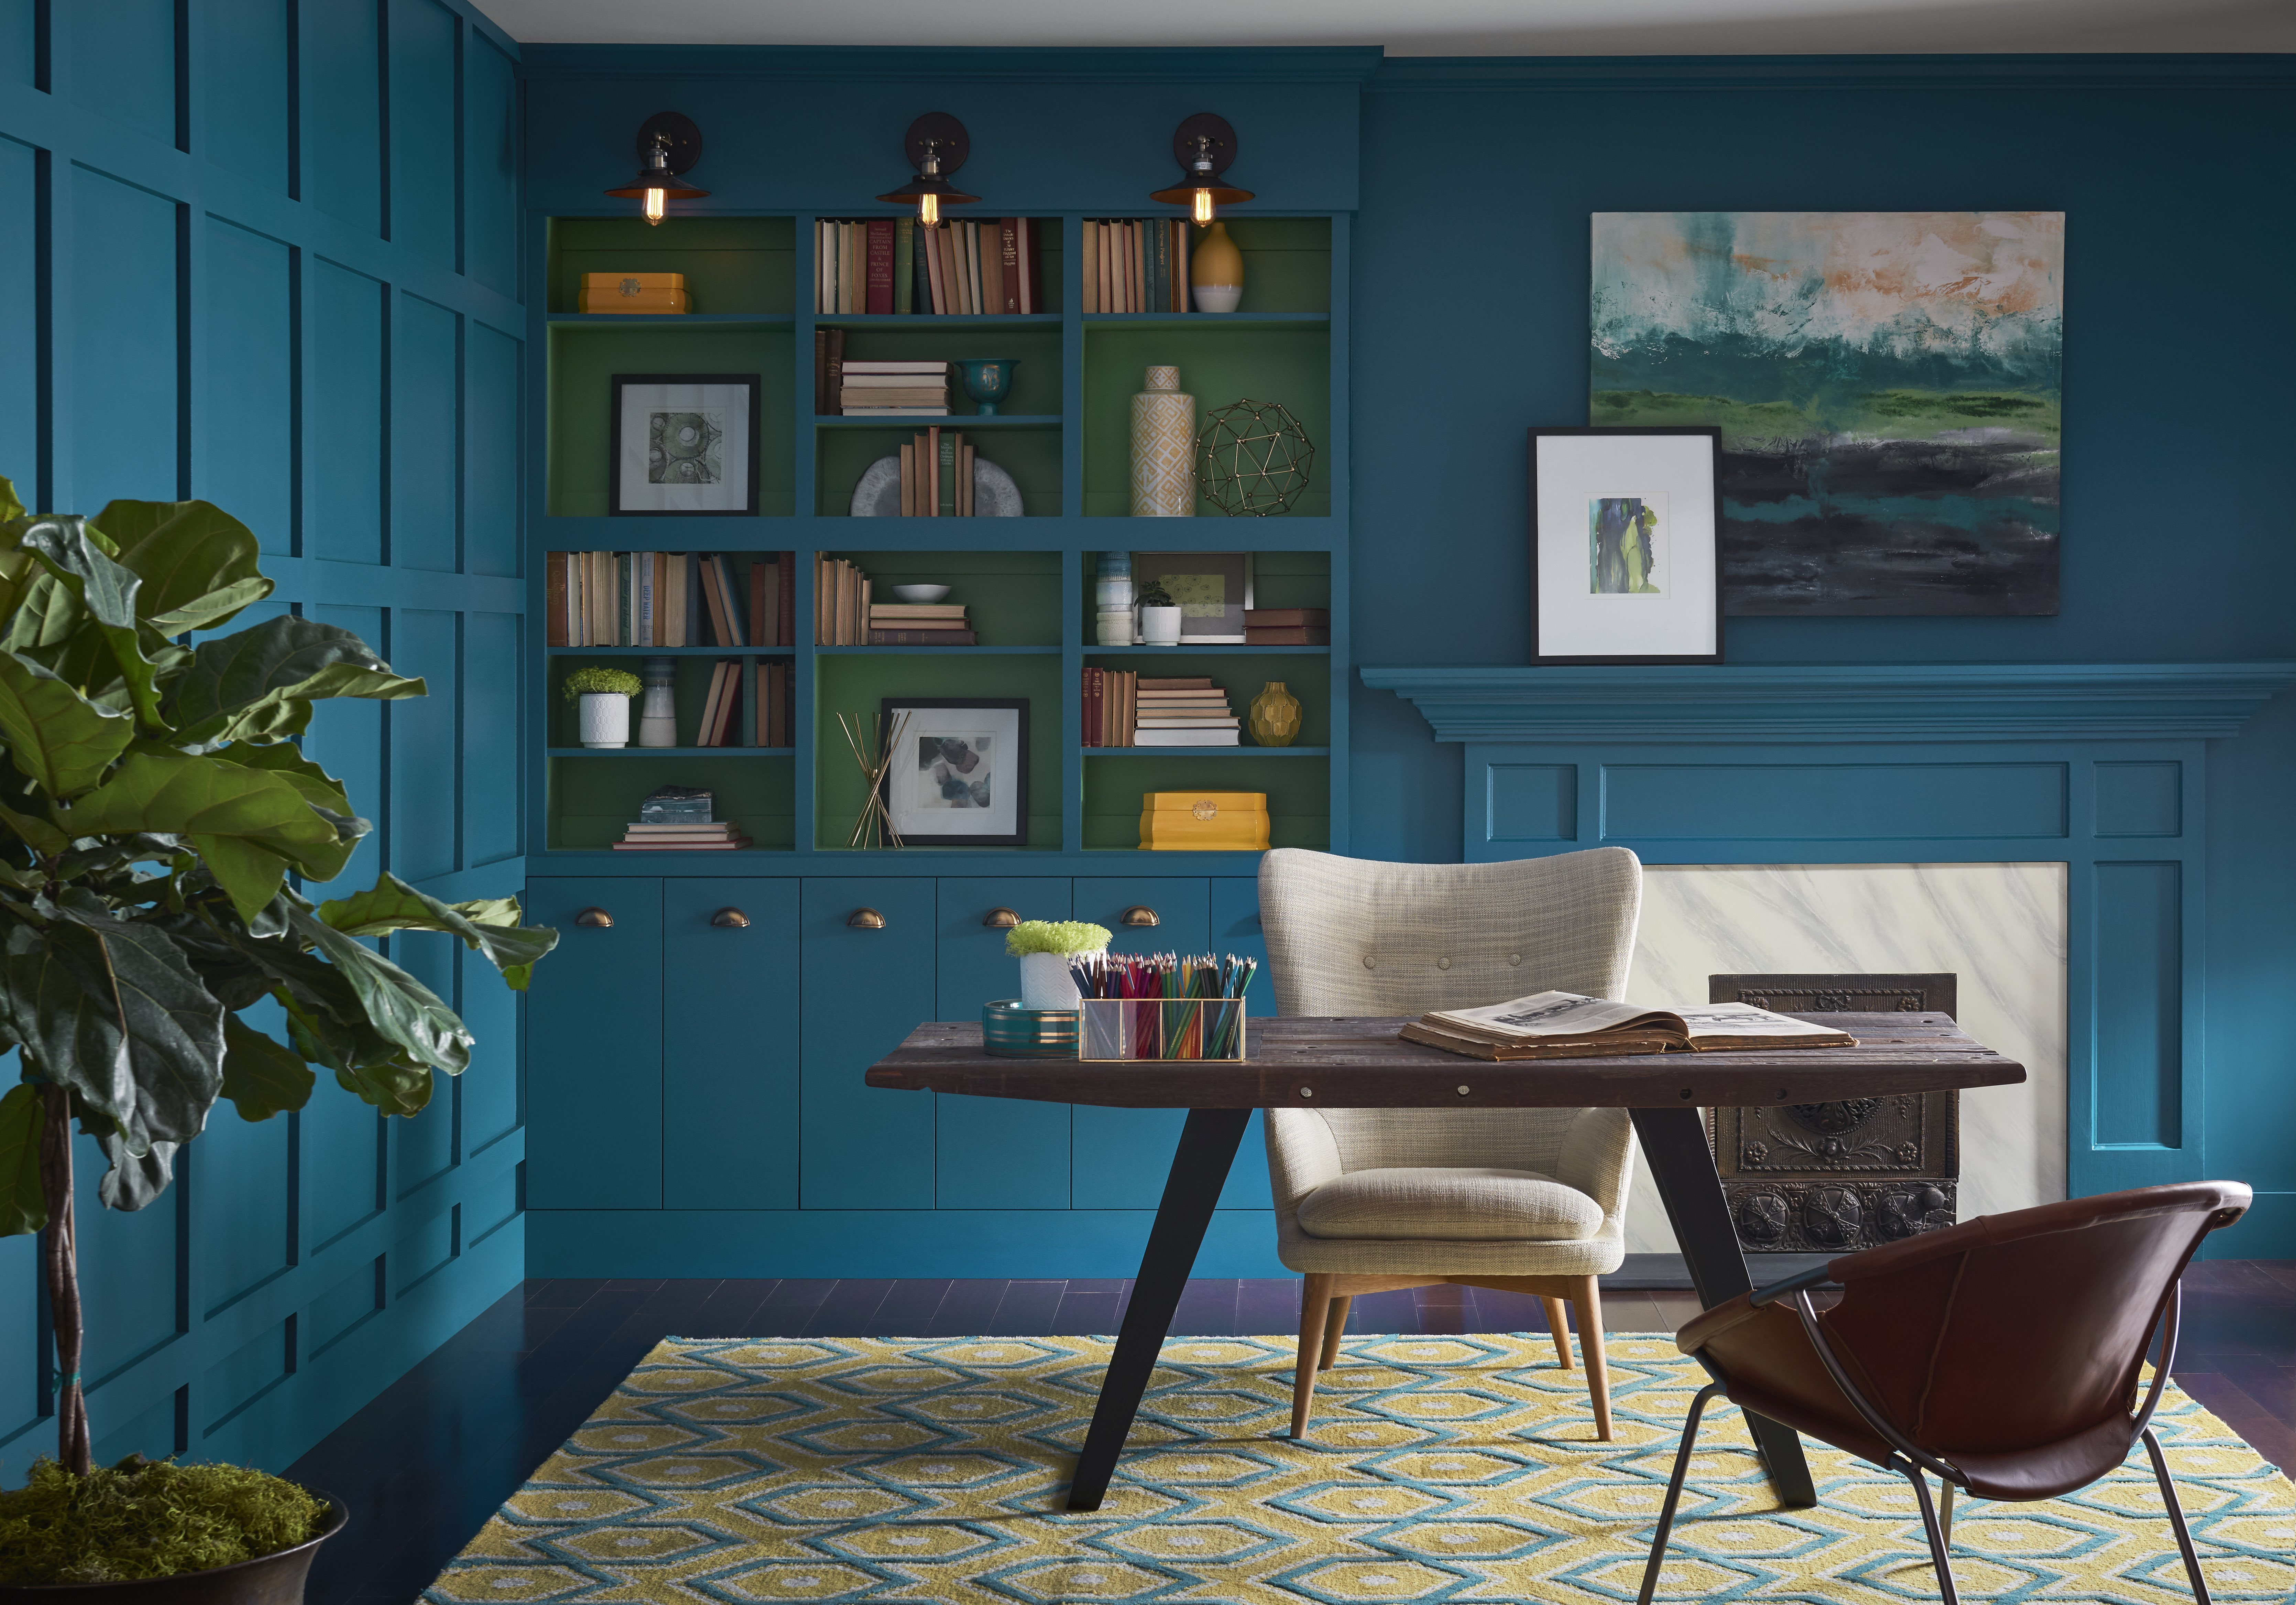 Inspired by wanderlust sherwin williams names 2018 color for Sherwin williams color of the month october 2017